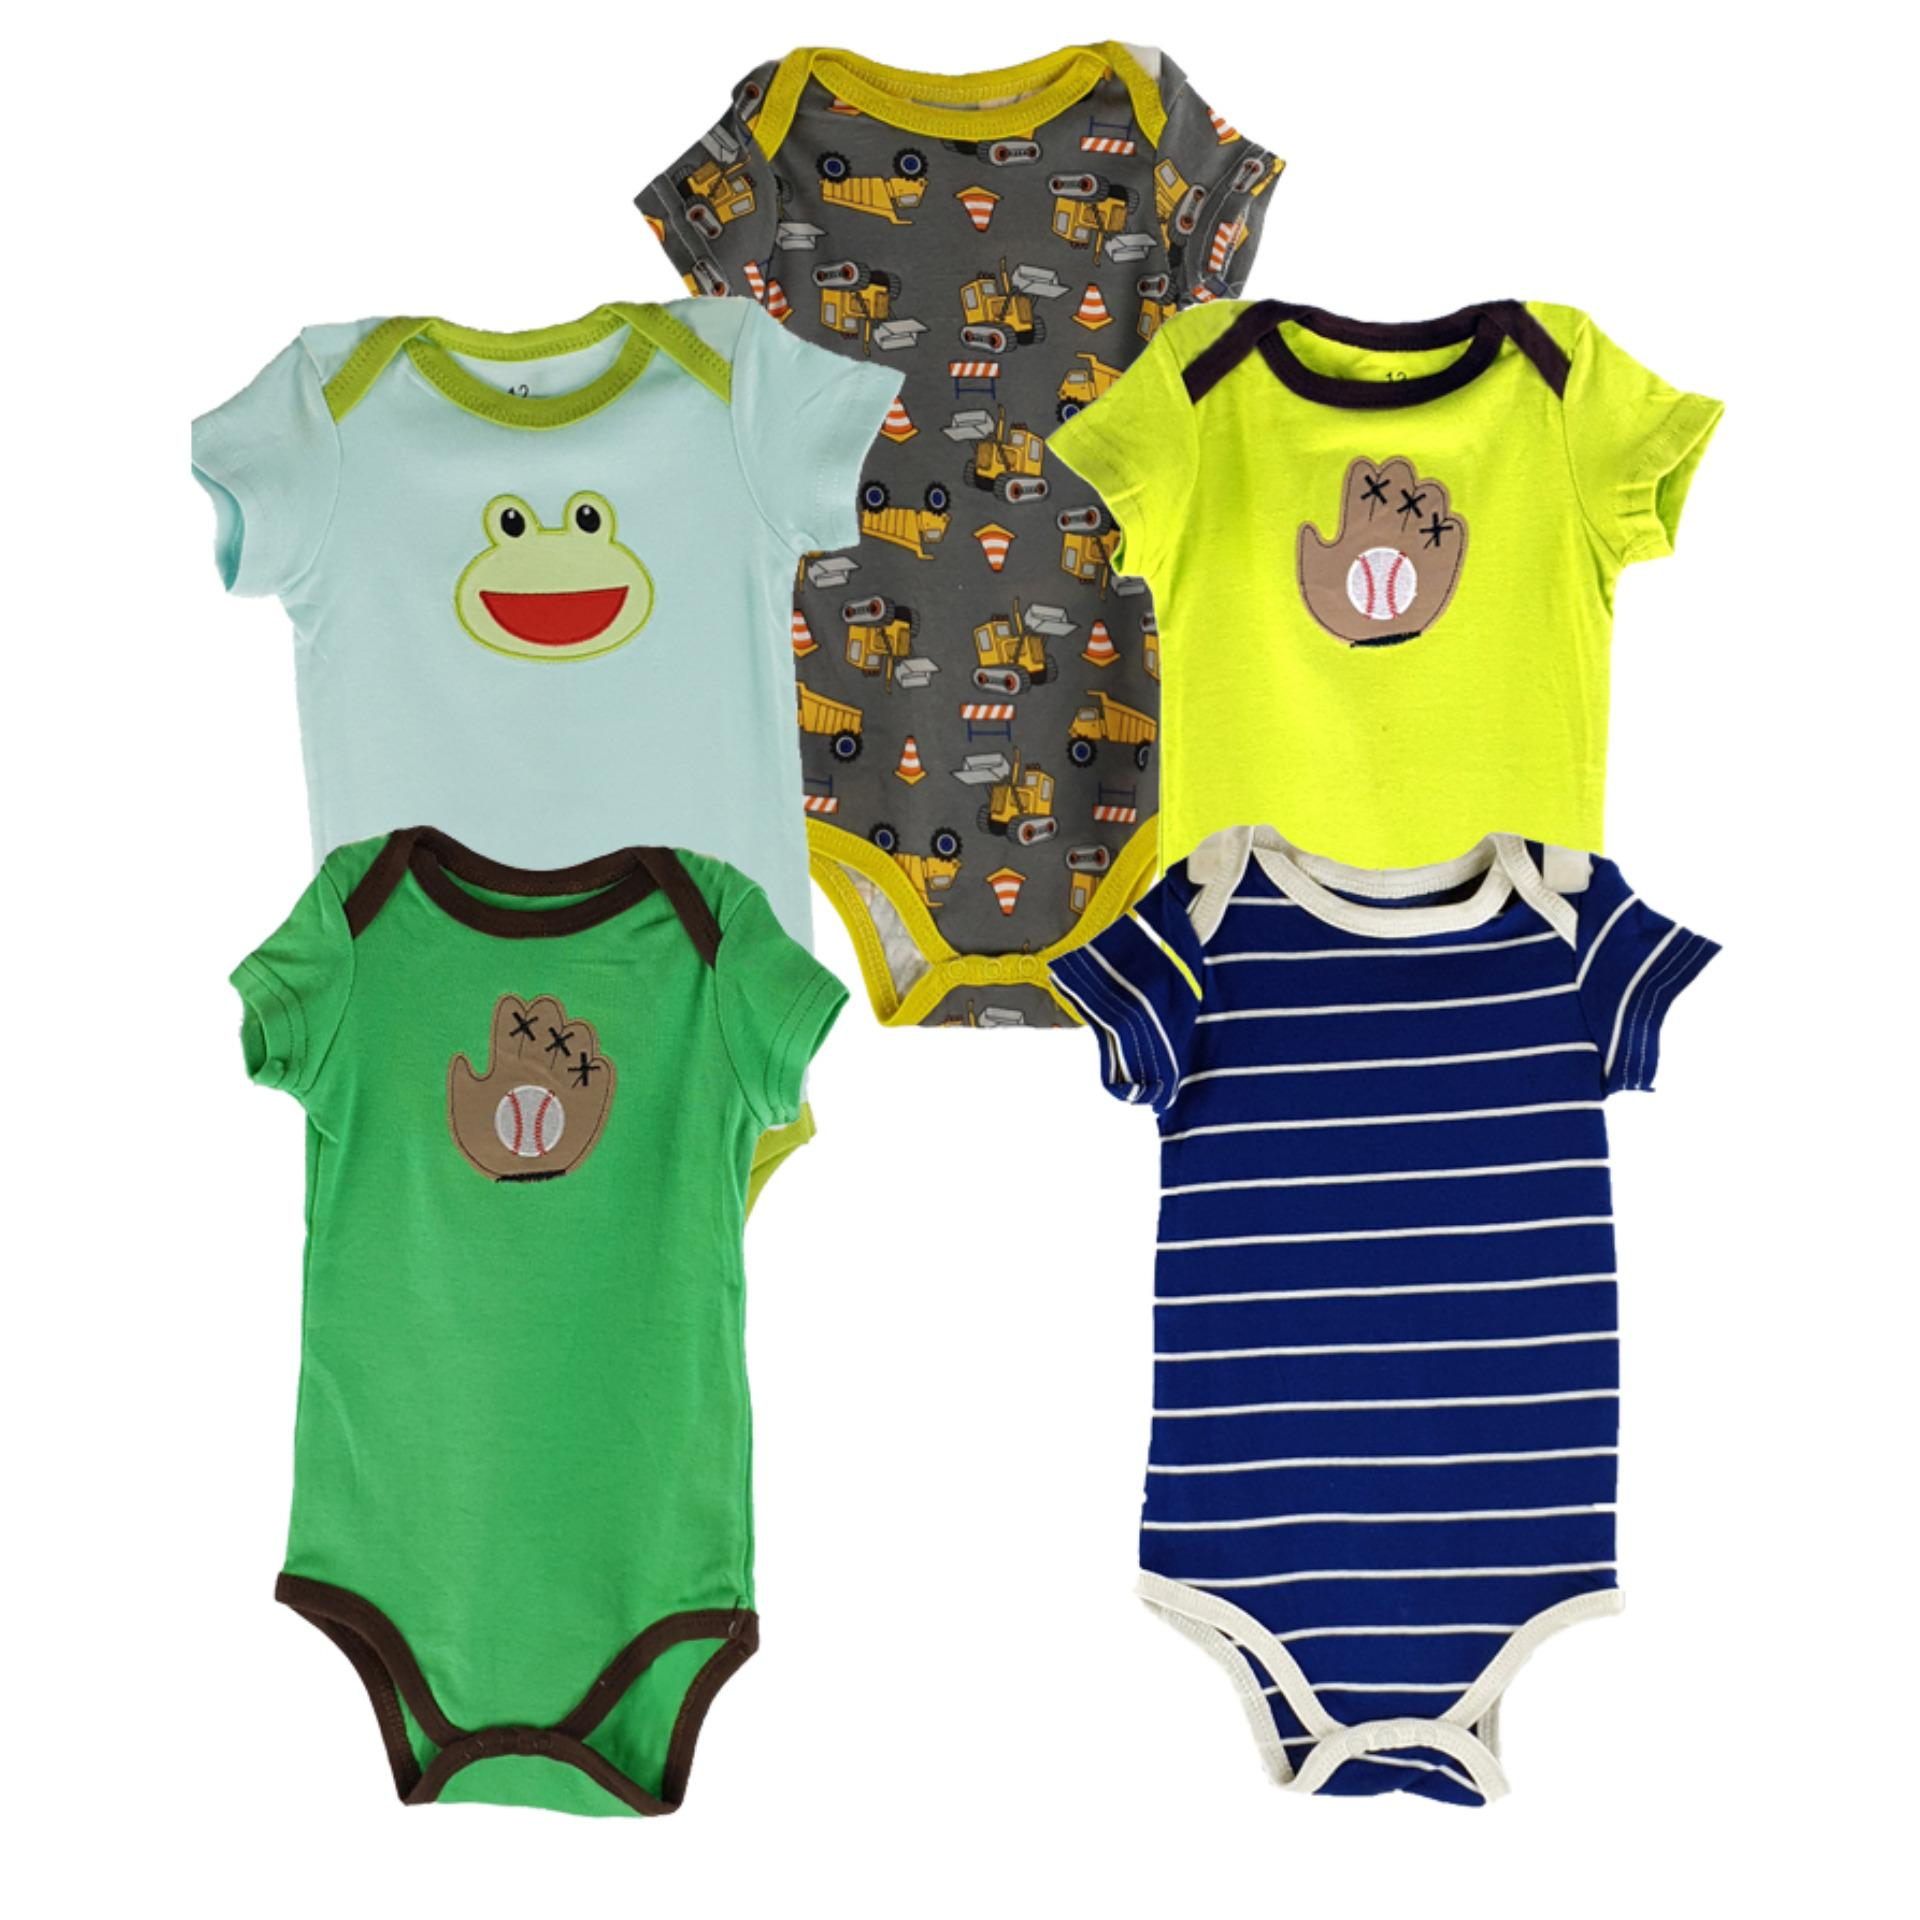 Clothing Accessories Buy At Best Price In Mom N Bab Long Pants Blue Polkadot Size 6t Pack Of 5 Cotton Half Sleeves Rompers For Baby Boy